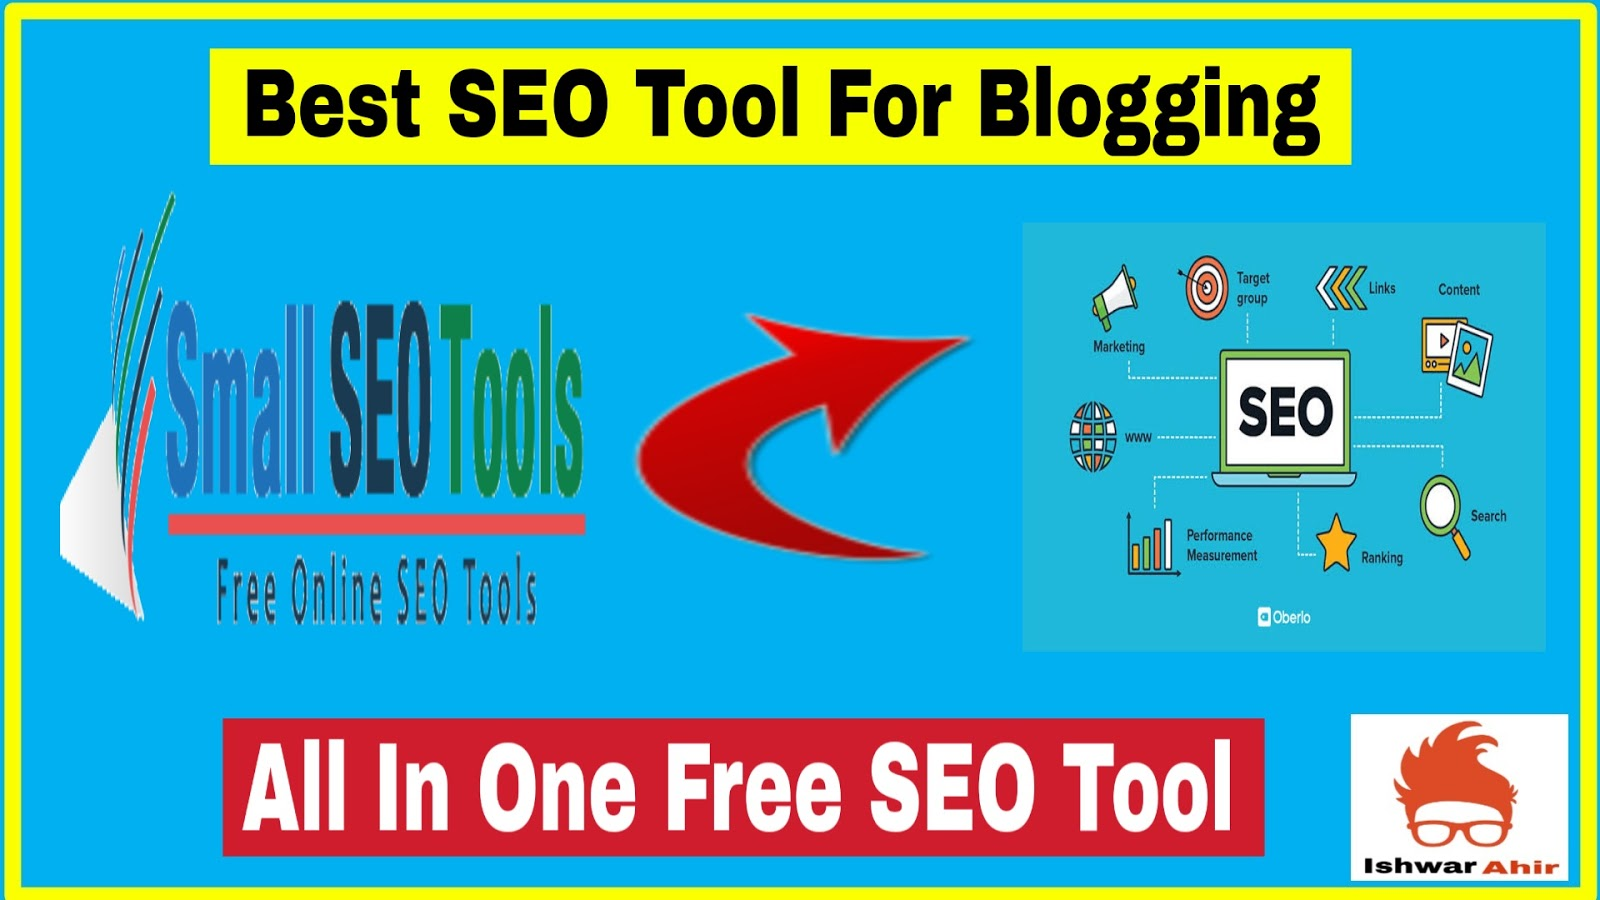 Best SEO Tool for Blogging